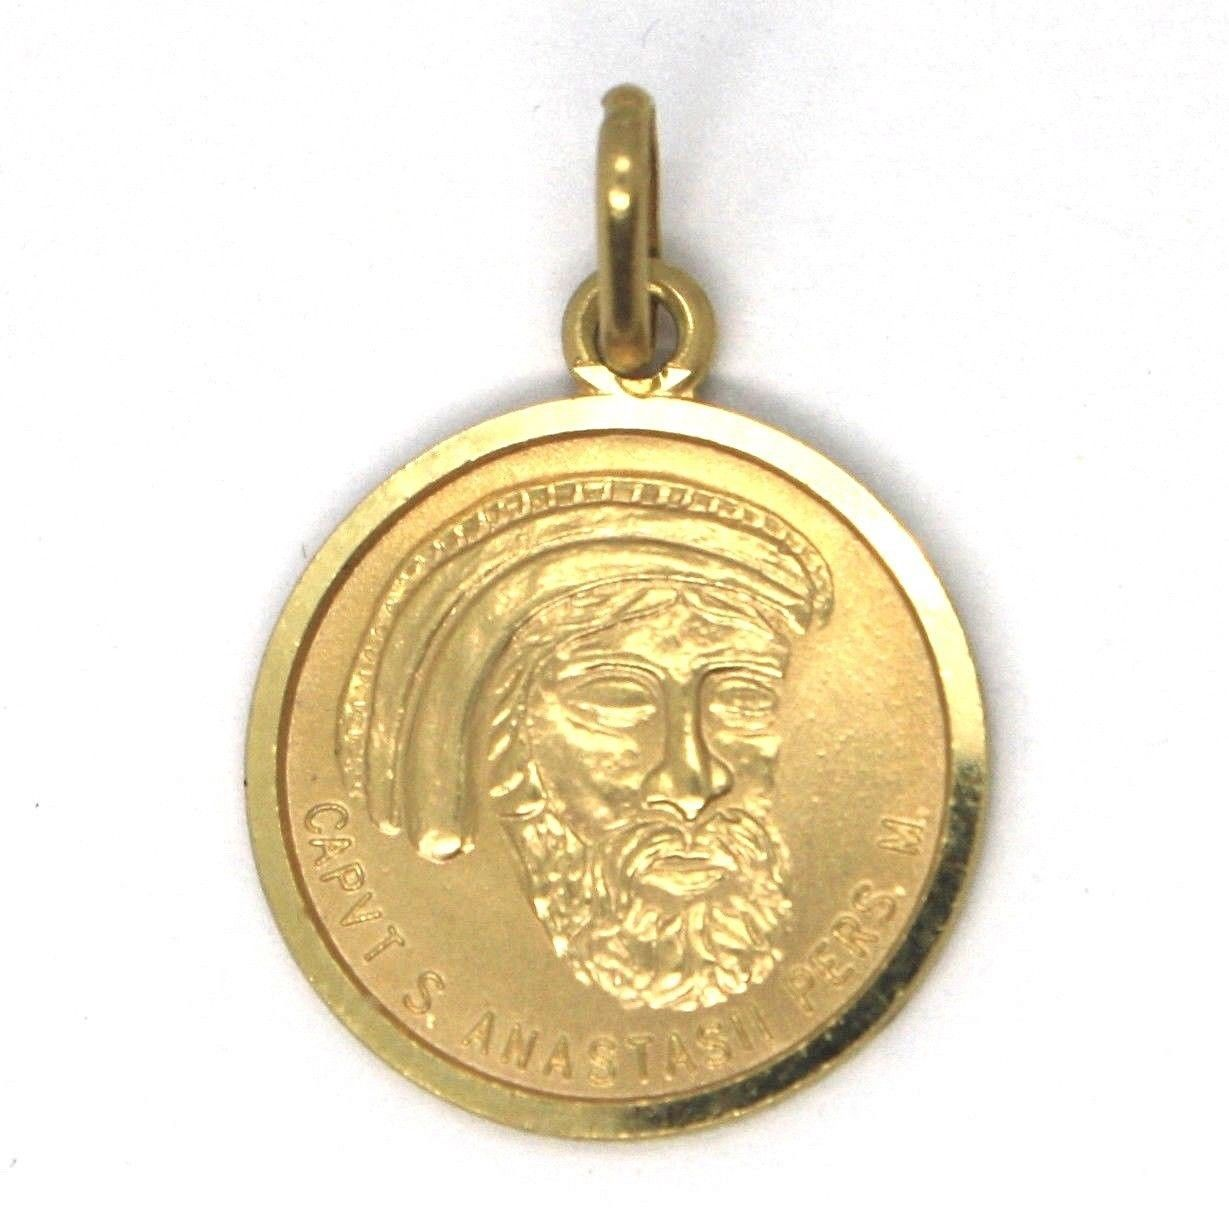 PENDANT MEDAL YELLOW GOLD 750 18K SAINT ANASTASIO, ROUND, MADE IN ITALY